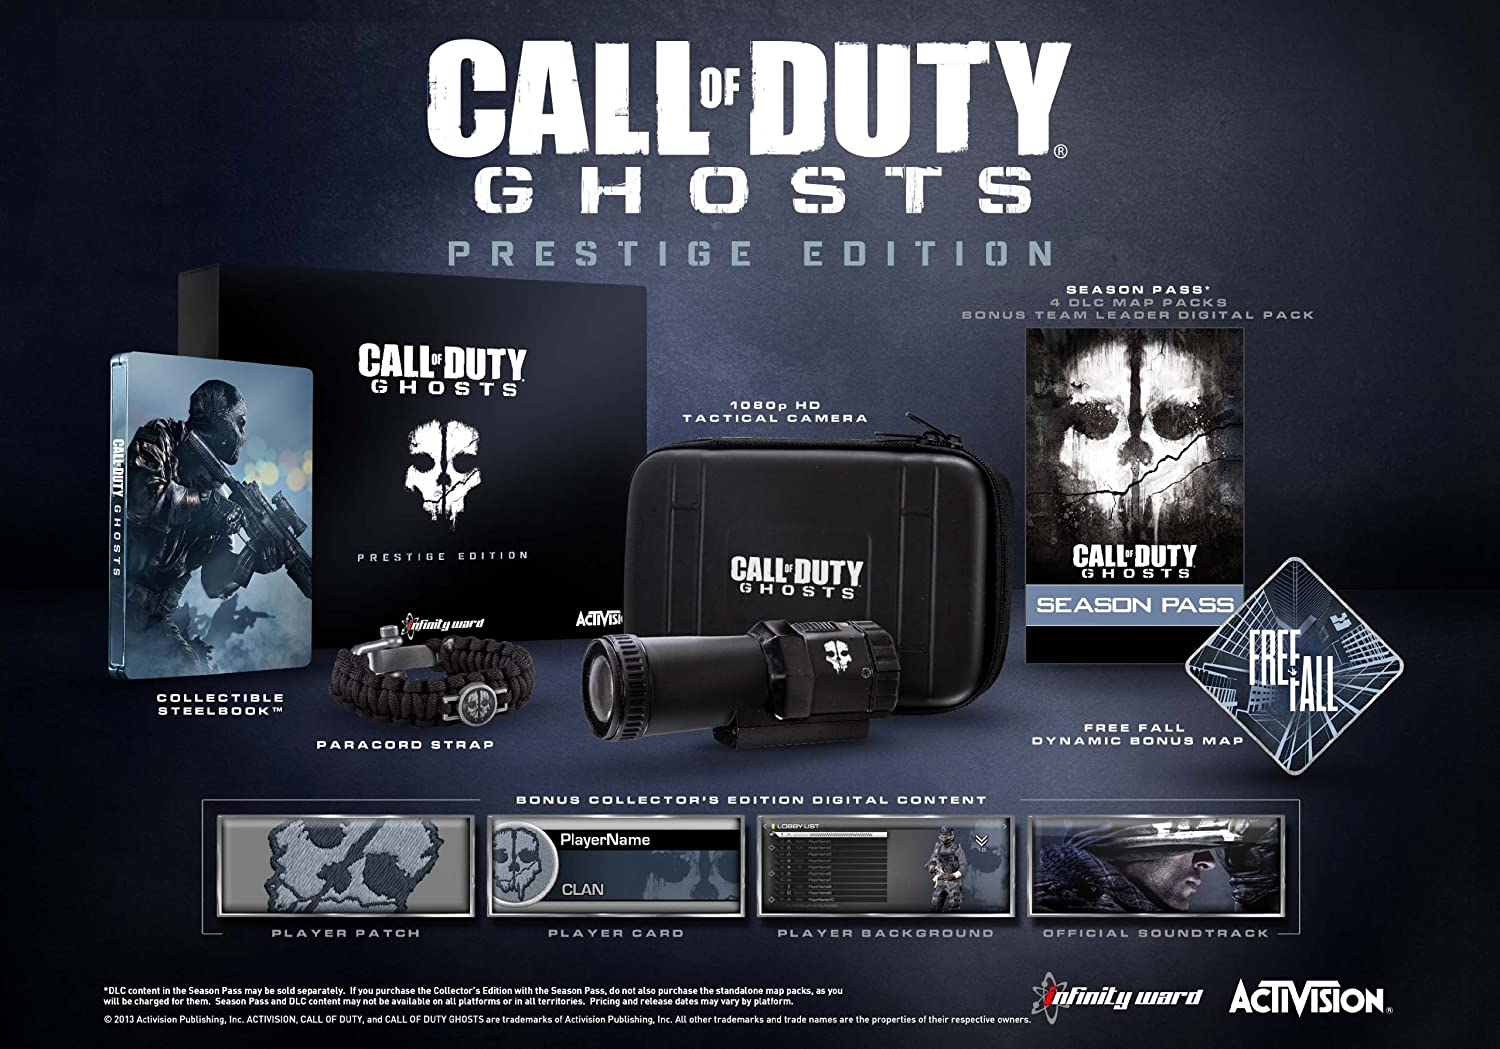 Amazon.com: Call of Duty: Ghosts Prestige Edition - Xbox 360: Video on